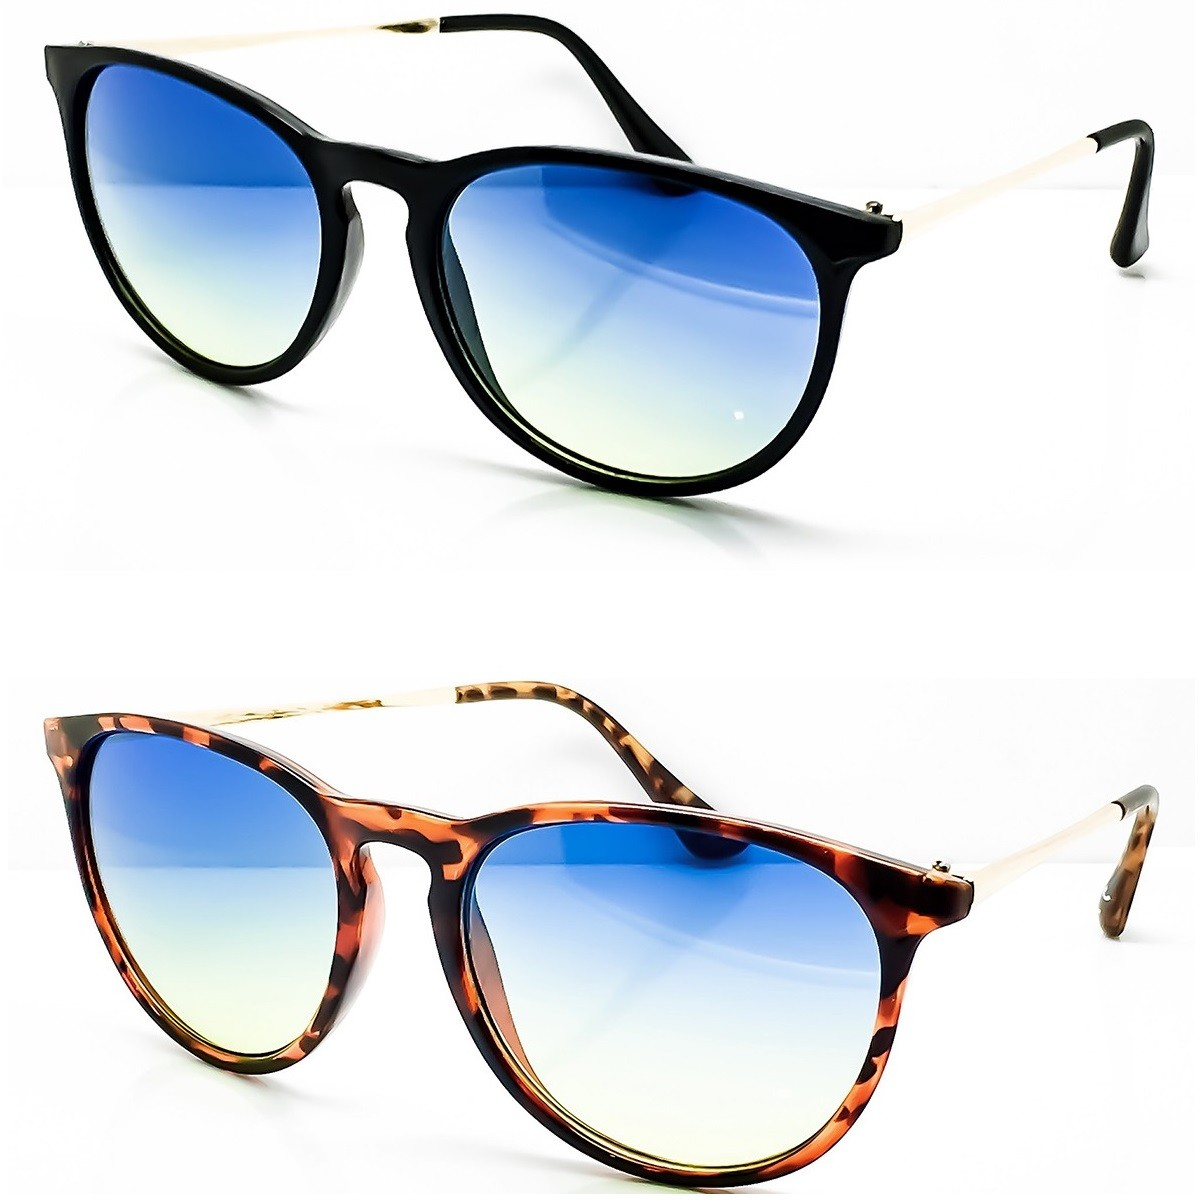 Sunglasses KISS® - style MOSCOT mod. LIGHT Smoke Gradient - VINTAGE Johnny Depp man woman CULT unisex